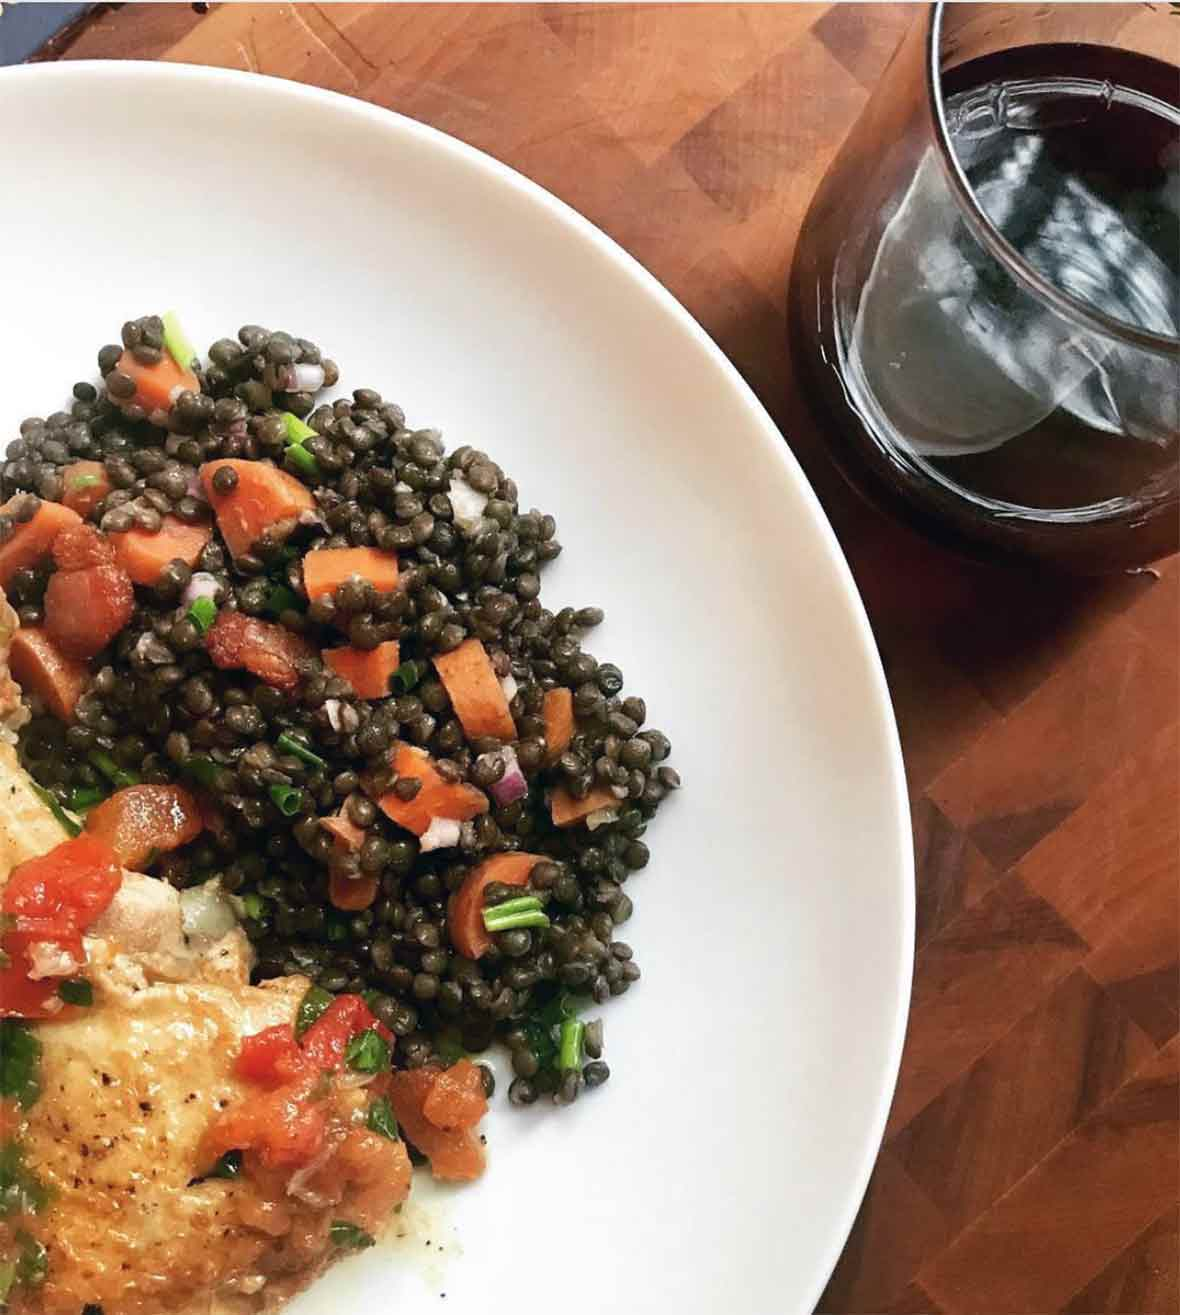 White plate with warm lentil salad and a glass of wine